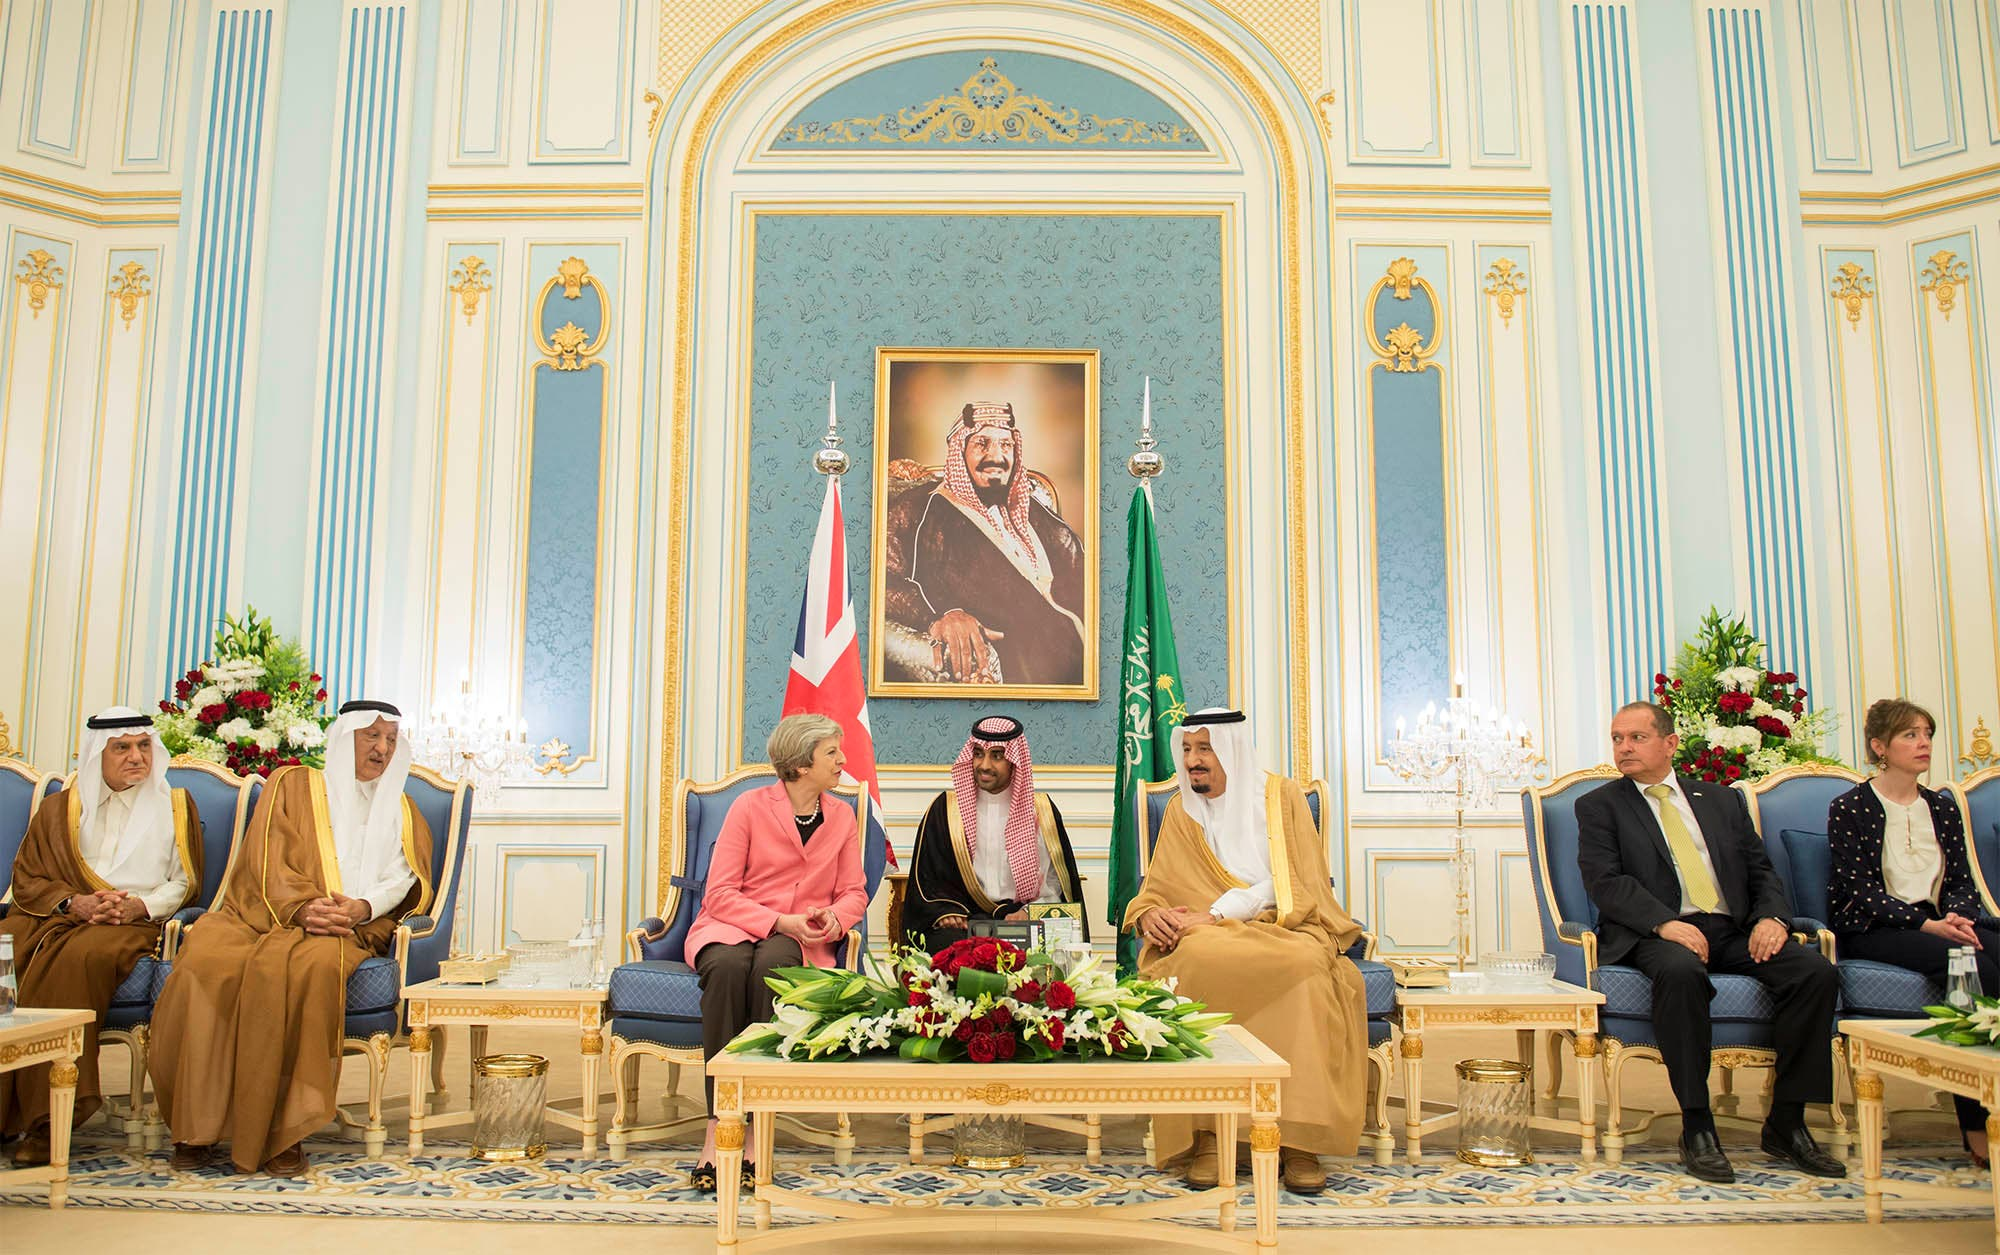 Saudi Arabia's King Salman bin Abdulaziz Al Saud meets with British Prime Minister Theresa May in Riyadh, Saudi Arabia, April 5, 2017. Bandar Algaloud/Courtesy of Saudi Royal Court/Handout via REUTERS ATTENTION EDITORS - THIS PICTURE WAS PROVIDED BY A THIRD PARTY. FOR EDITORIAL USE ONLY.